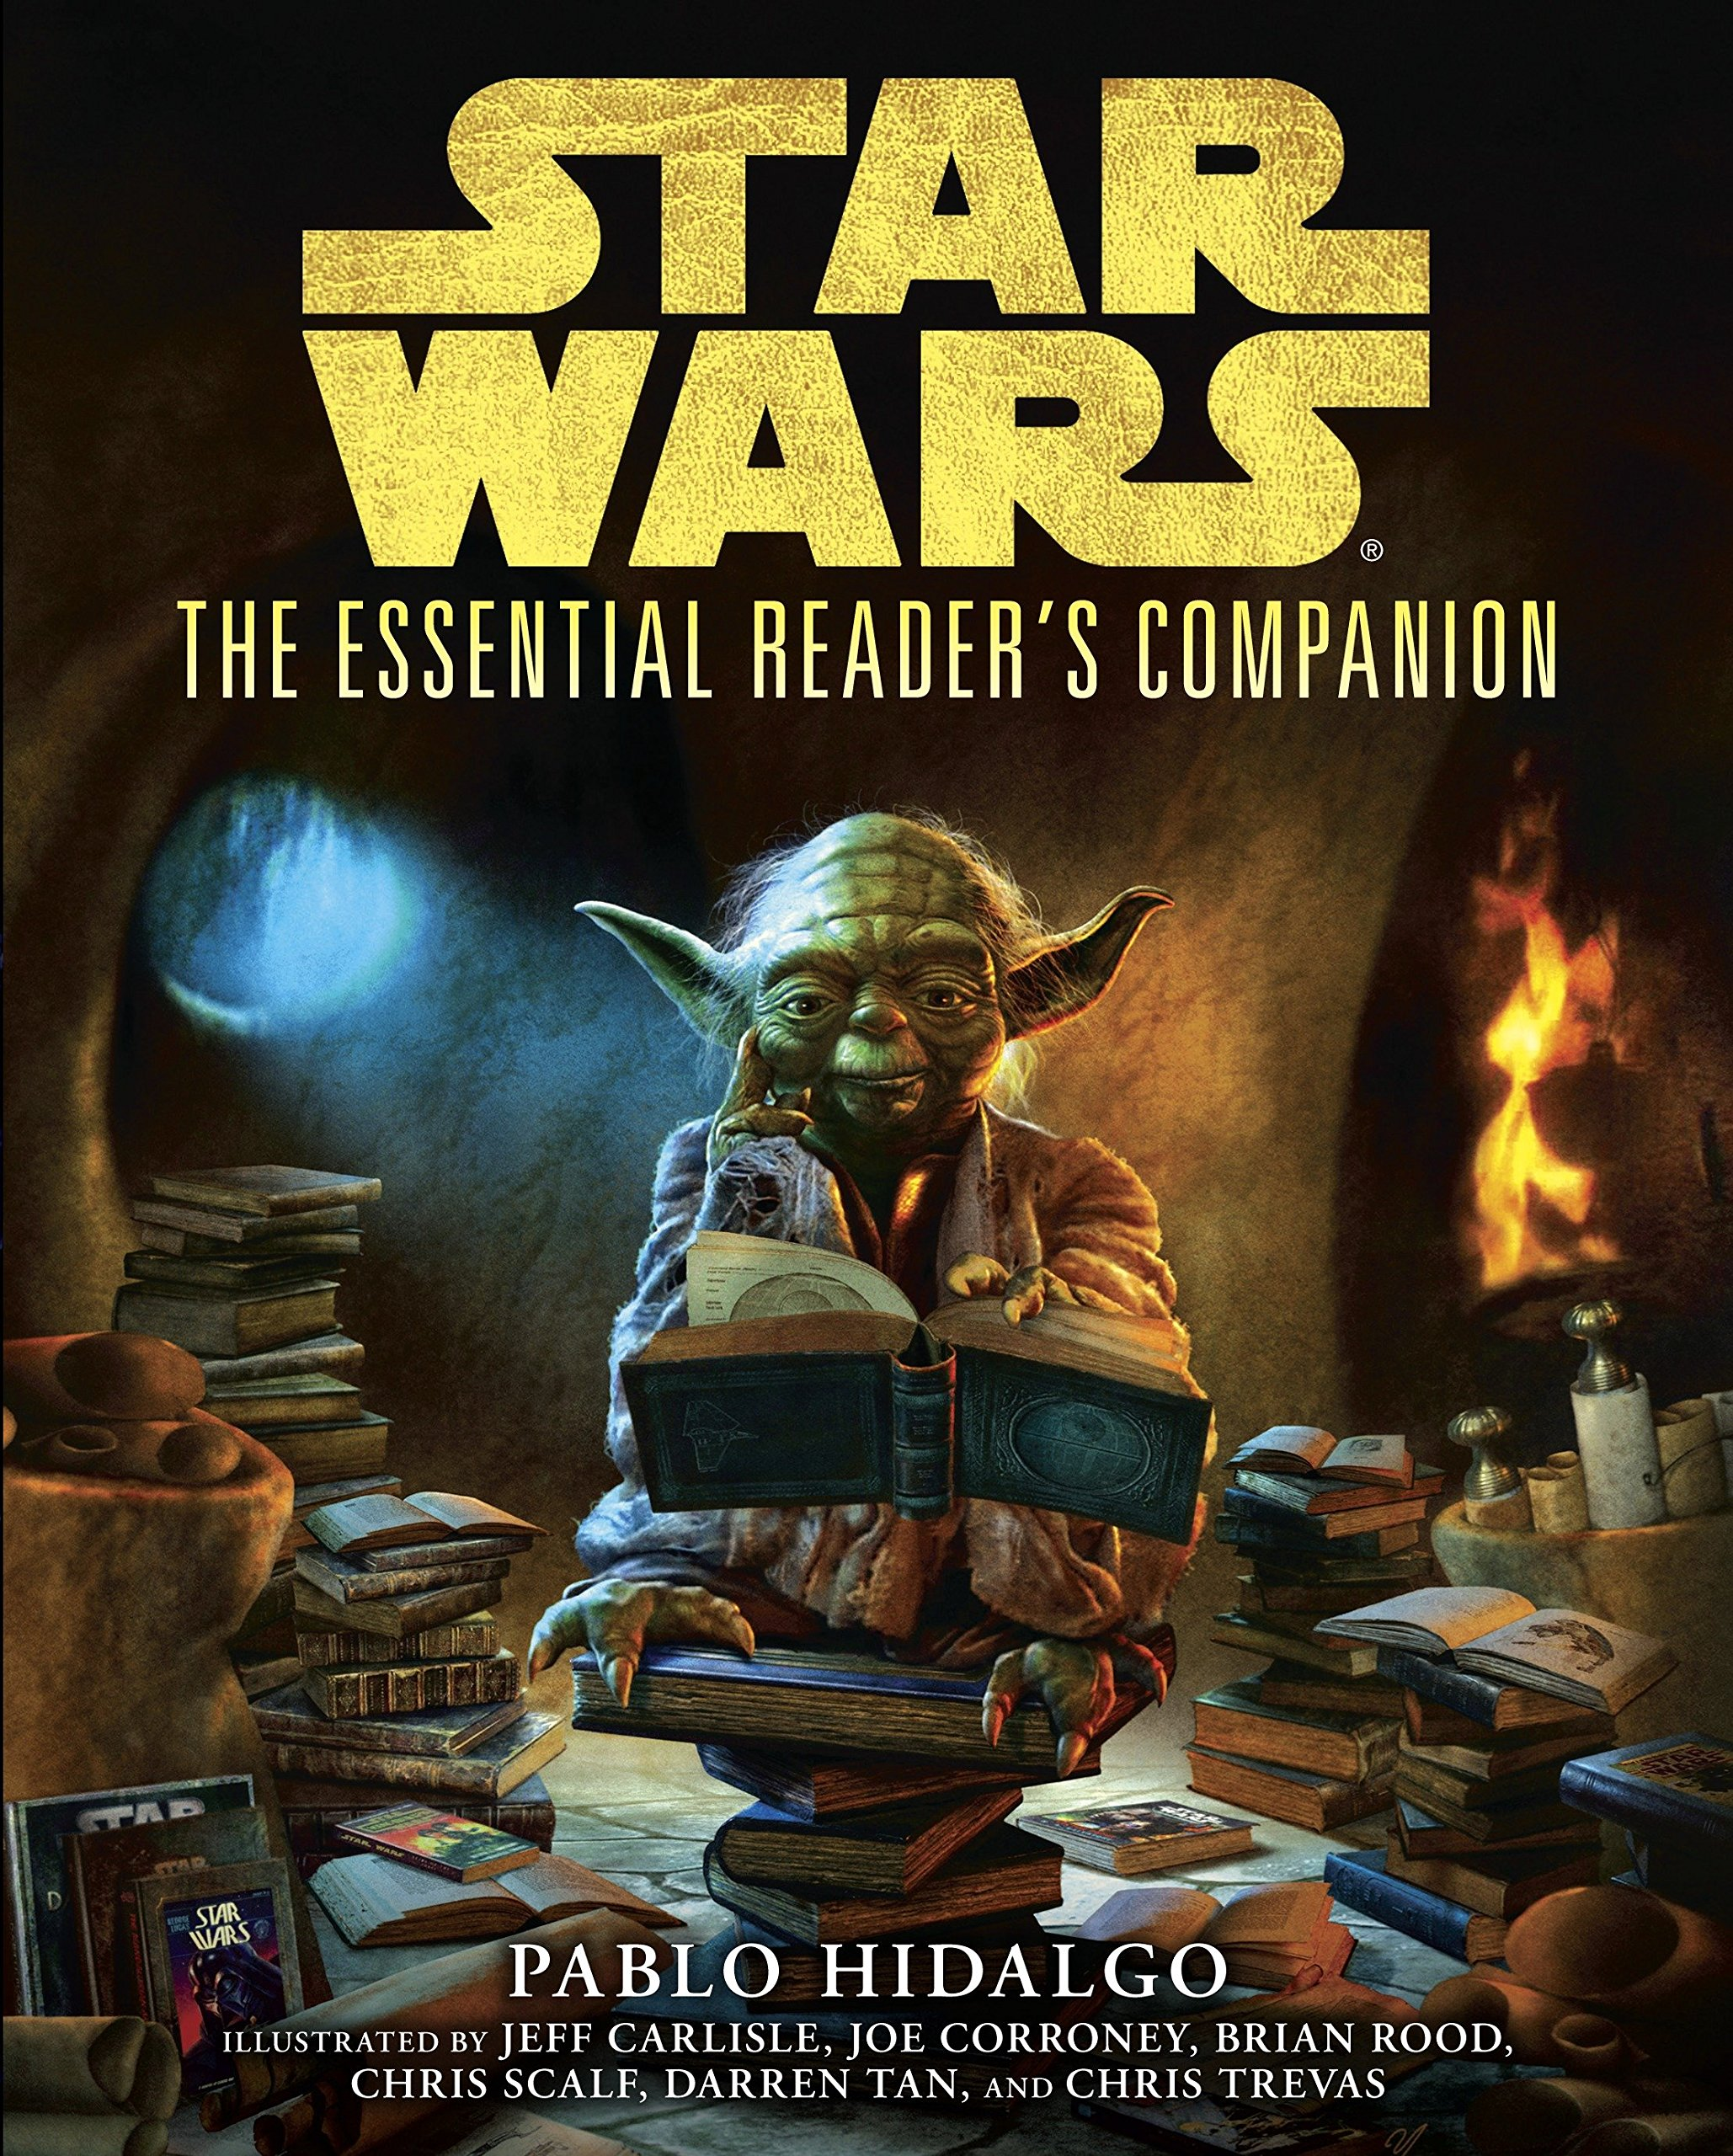 The Essential Reader's Companion (Star Wars) (Star Wars